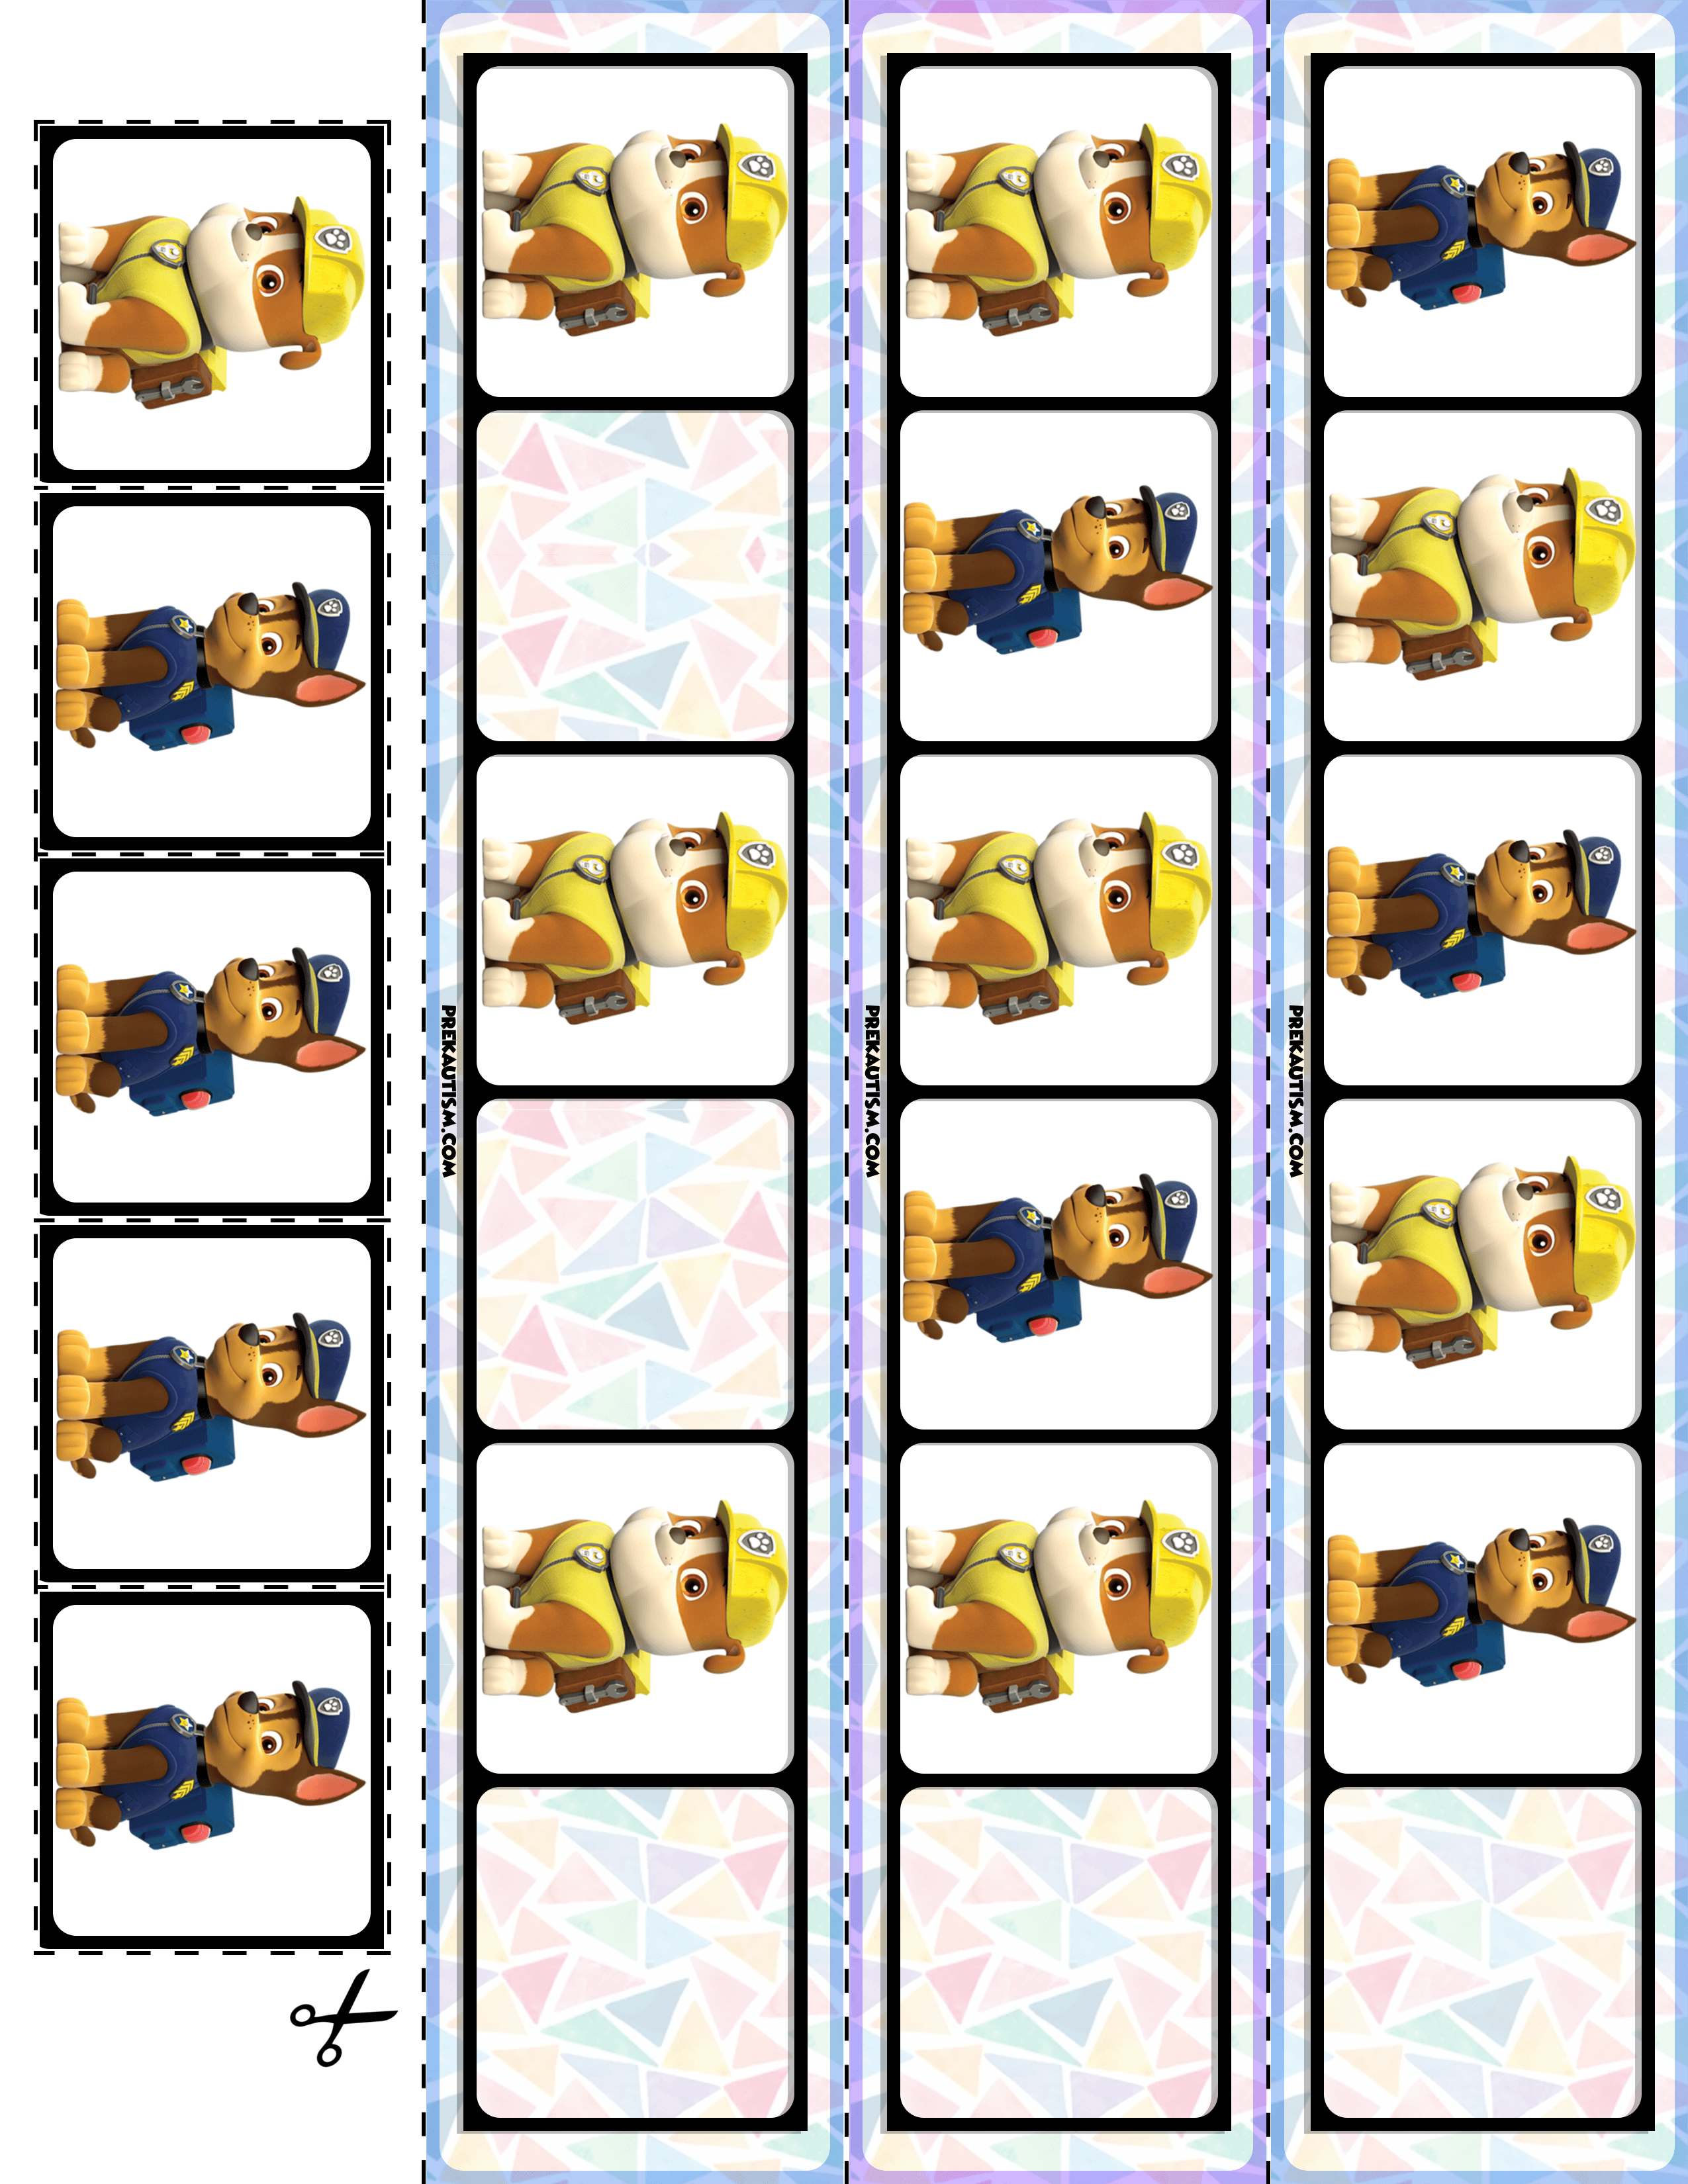 Free! Paw Patrol Printable Materials | My Tpt Store | Free | Free Printable Ab Pattern Worksheets